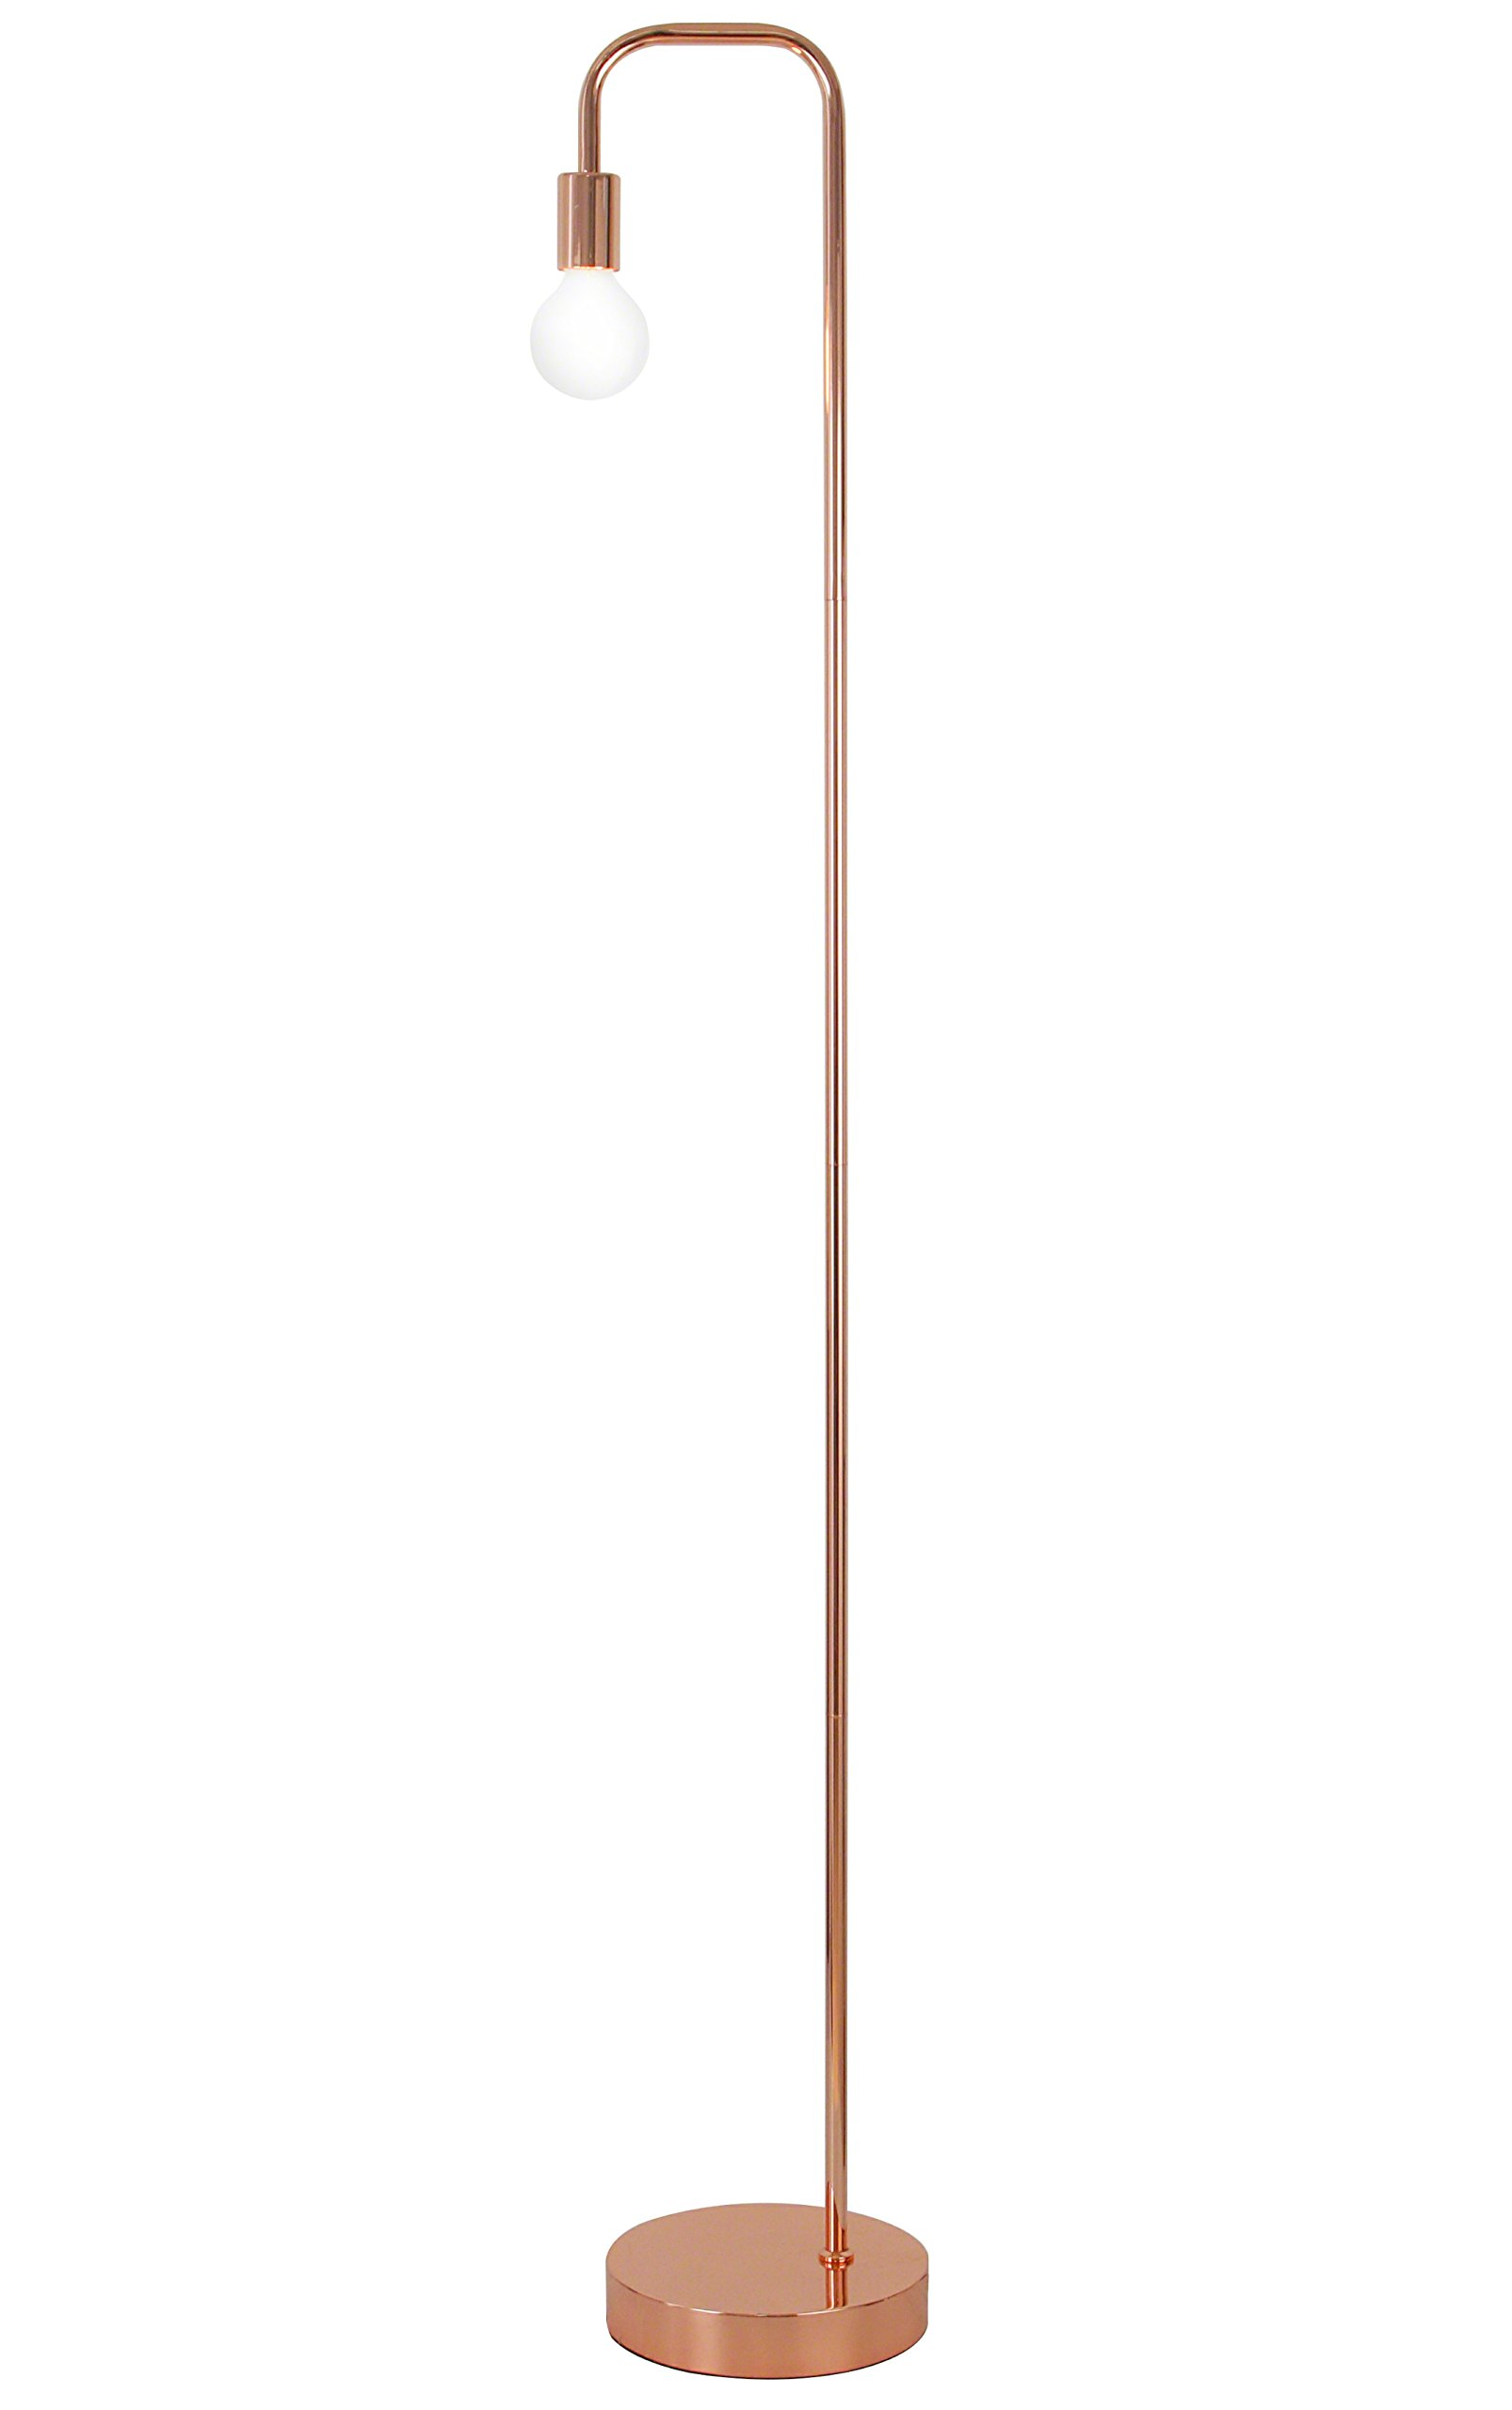 Floor Lamp for Living Room, Industrial Rose Gold Metal Reading Lamp, Contemporary Bedroom Décor, Led Bulb 4W Gifts